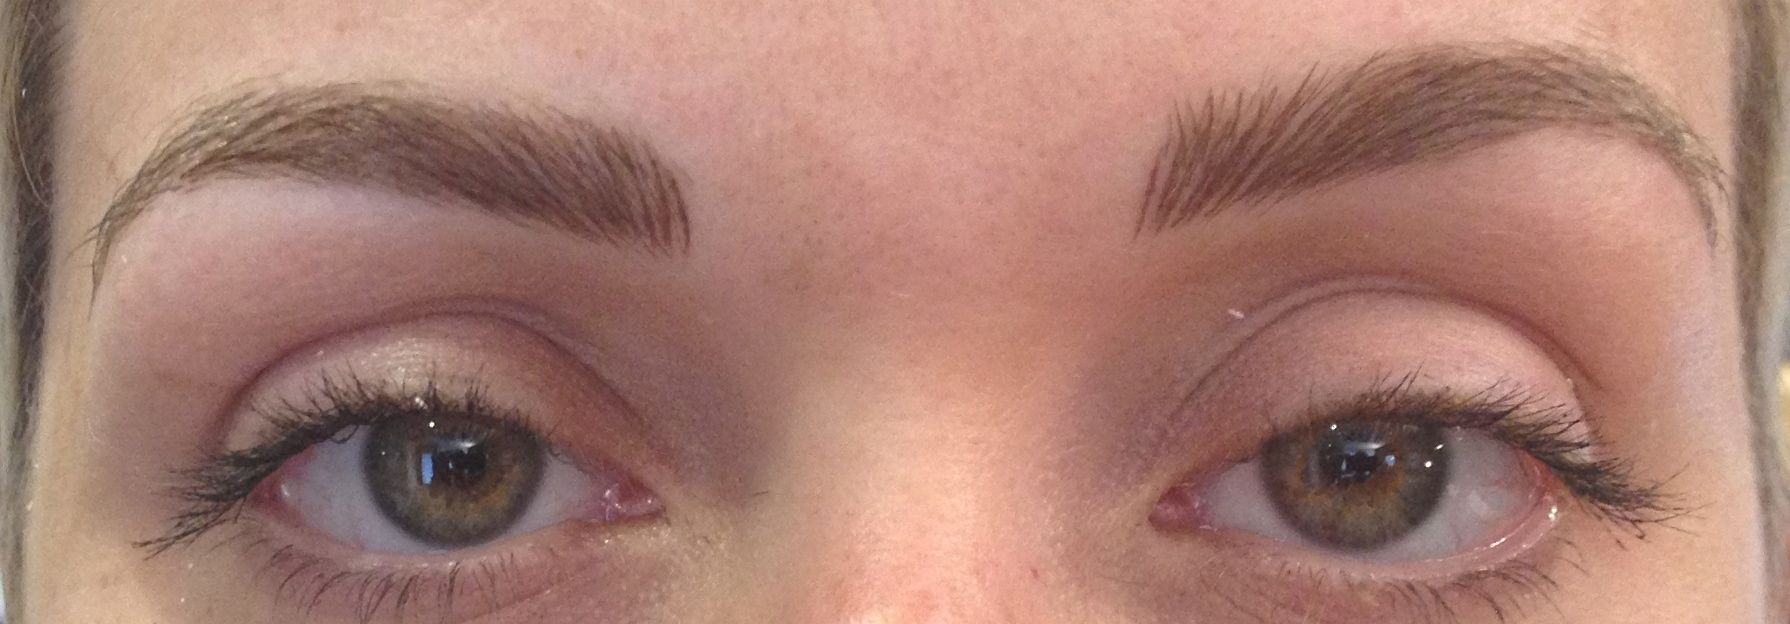 Semi permanent brow tattoo: embrowdery tried and tested | Beaut.ie